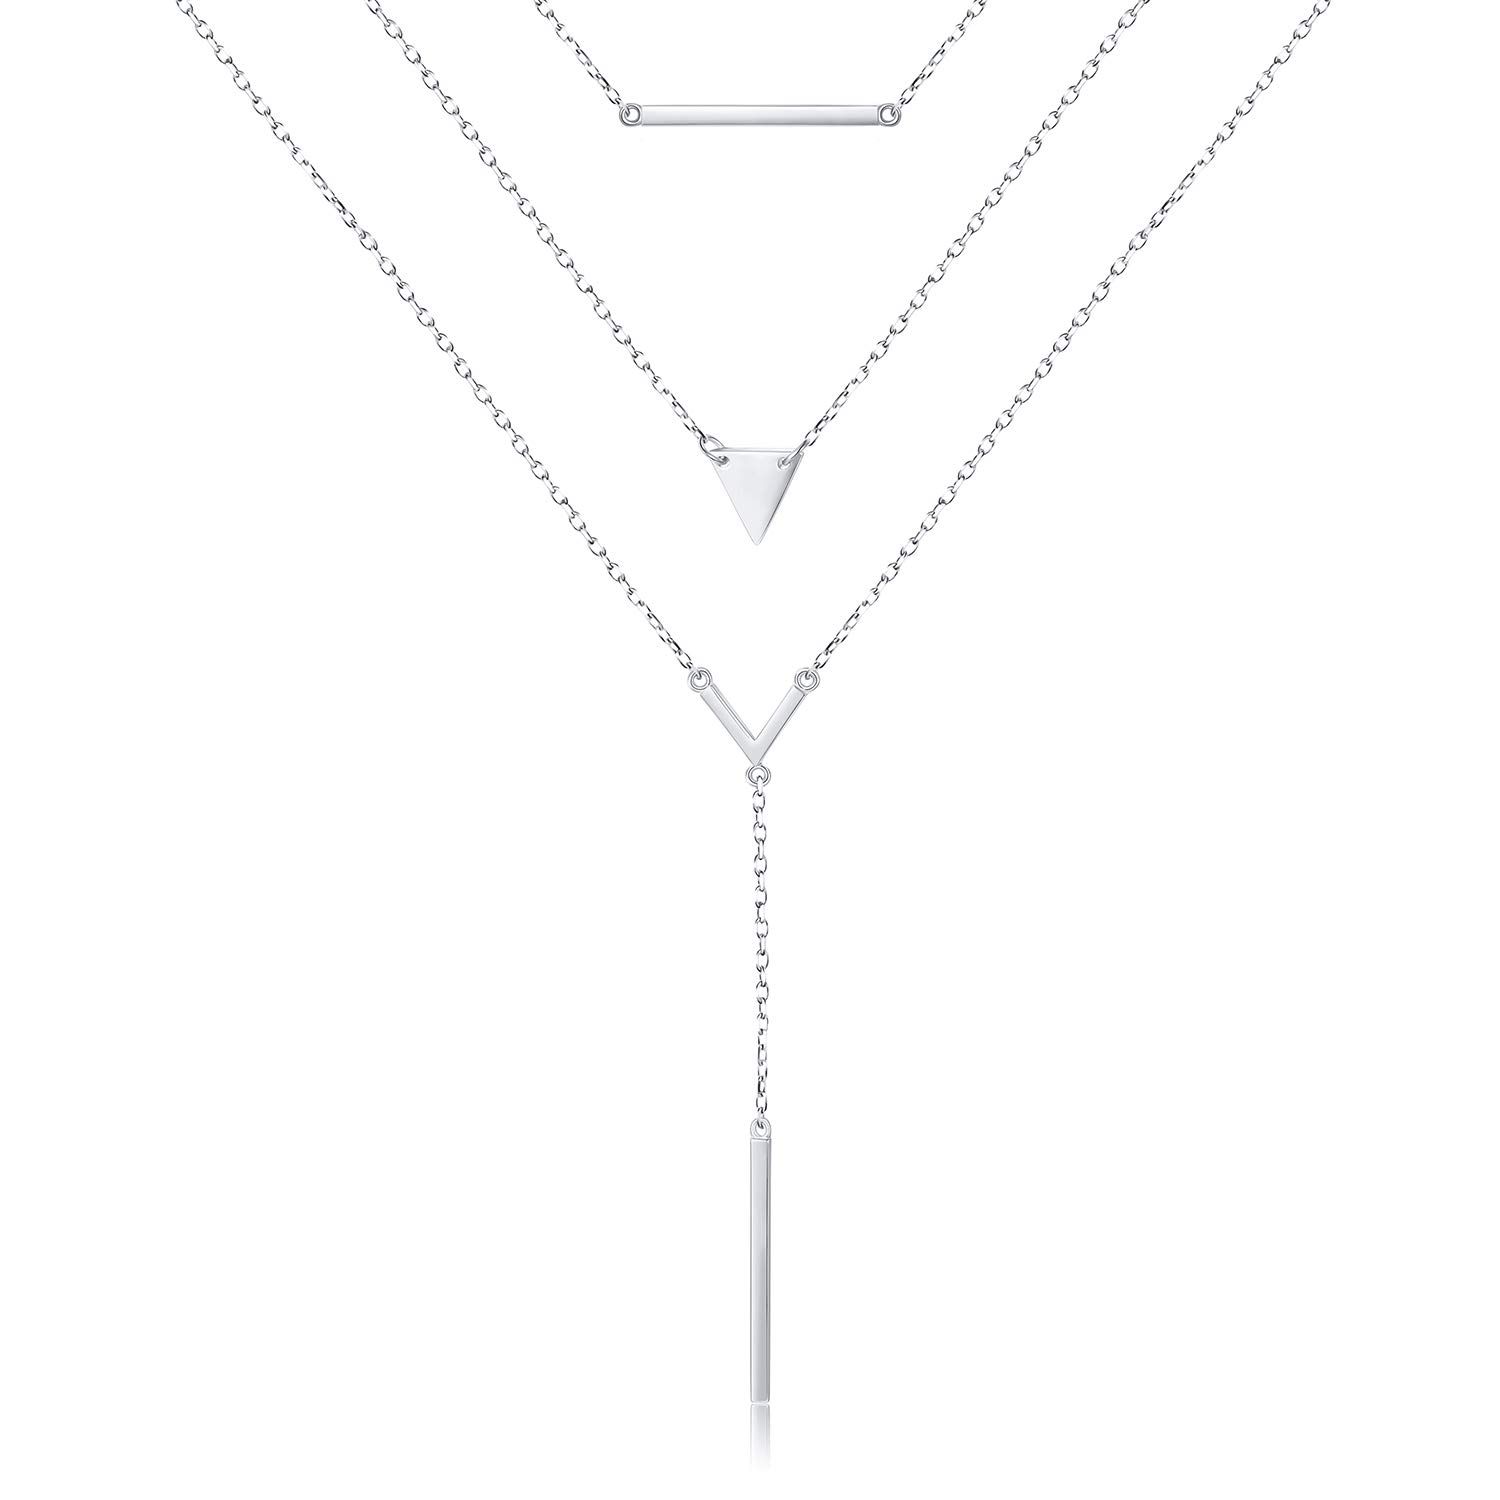 S925 Sterling Silver Multilayer Dot Bar Layered Triple Long Chain Pendant Necklace for Women (White 2)